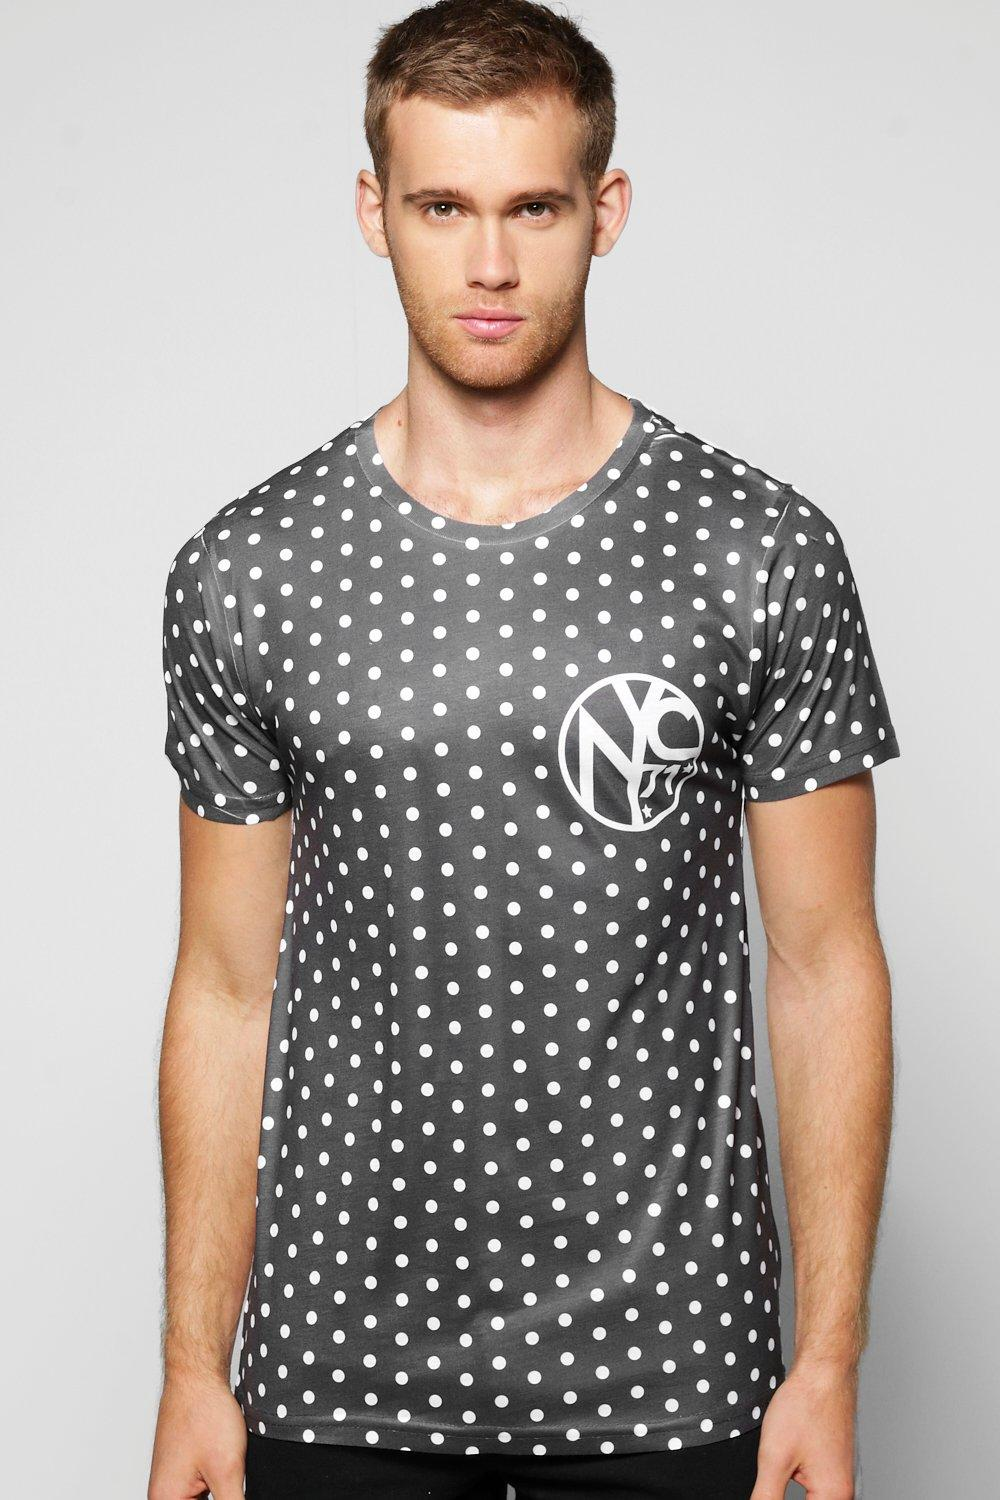 All Over Spot NYC Sublimation T-Shirt